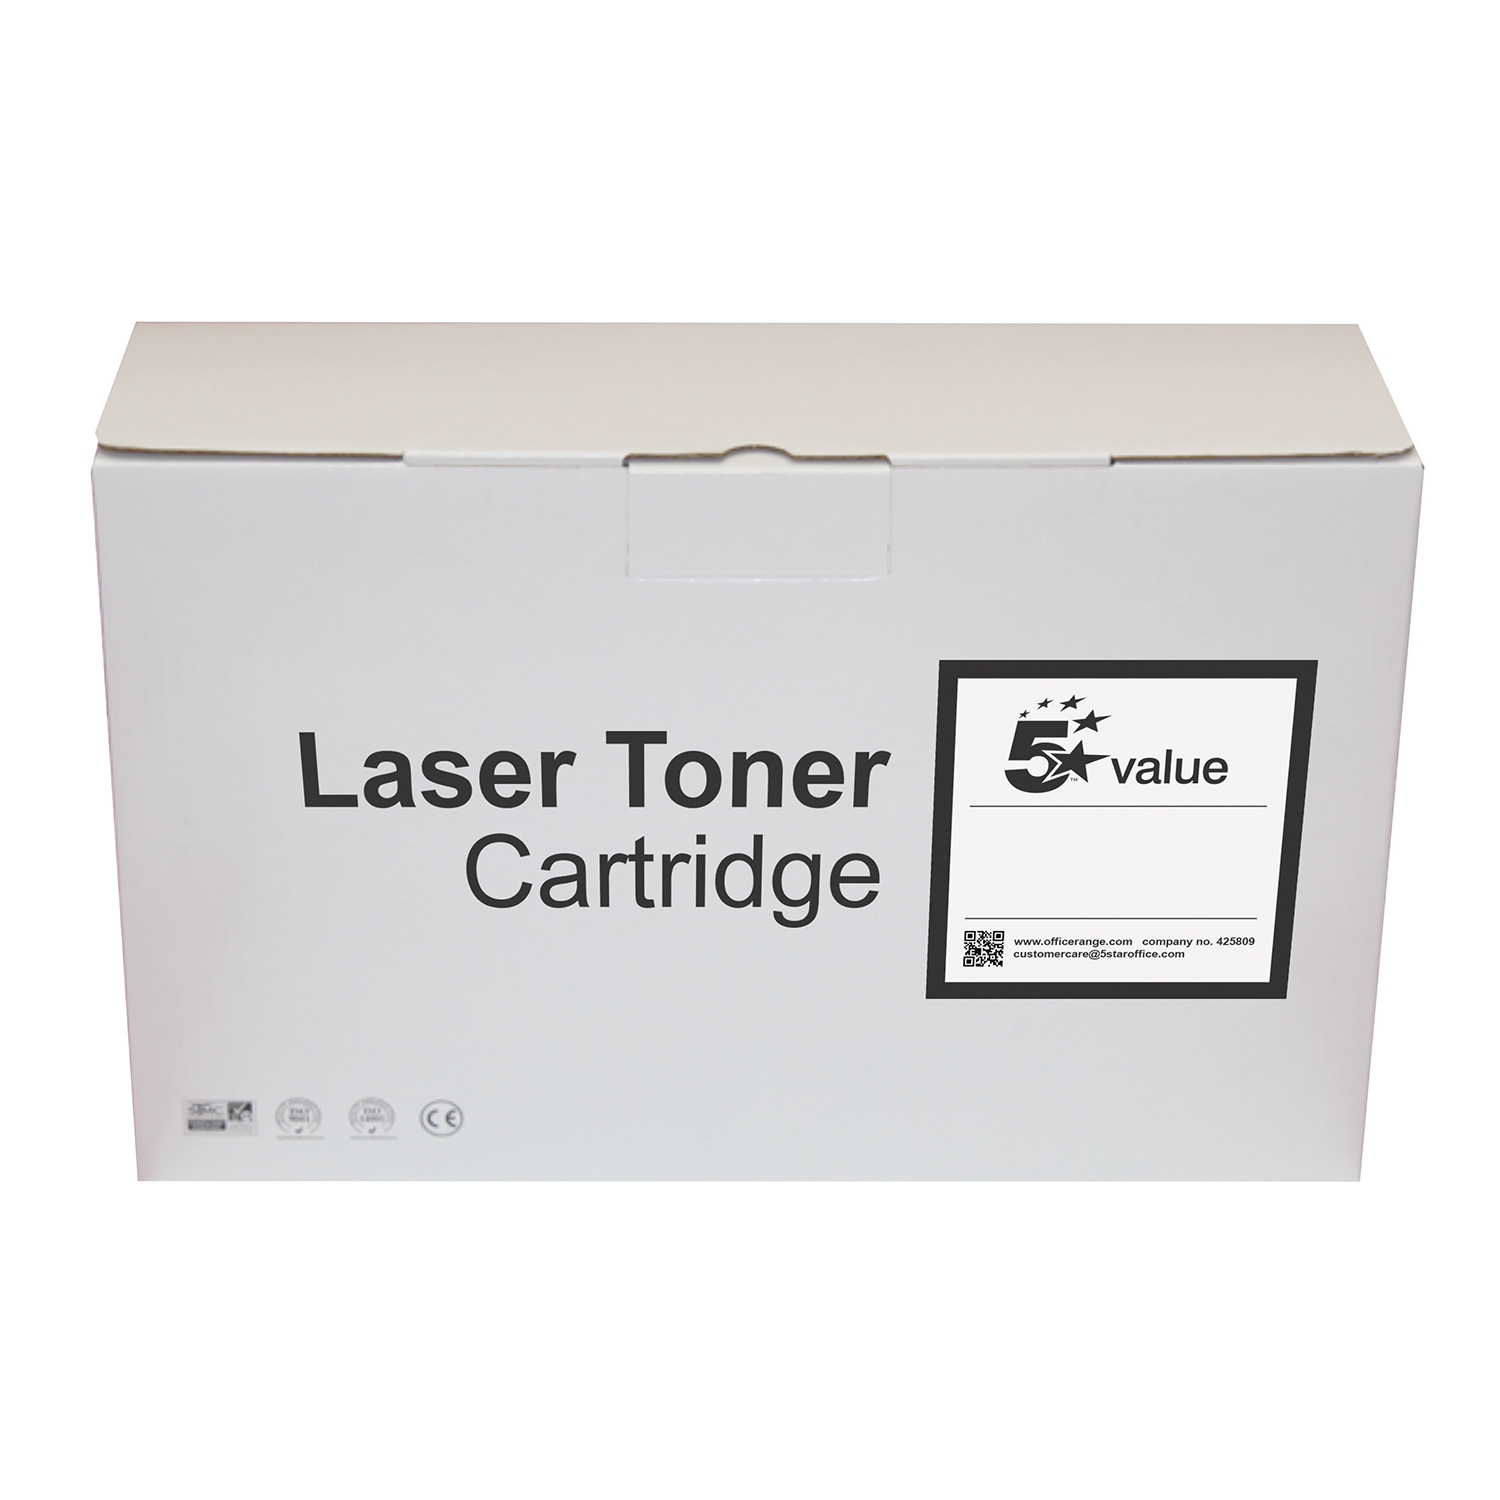 5 Star Value Remanufactured Laser Toner Cartridge Page Life 2000pp Black HP No. 36A CB436A Alternative